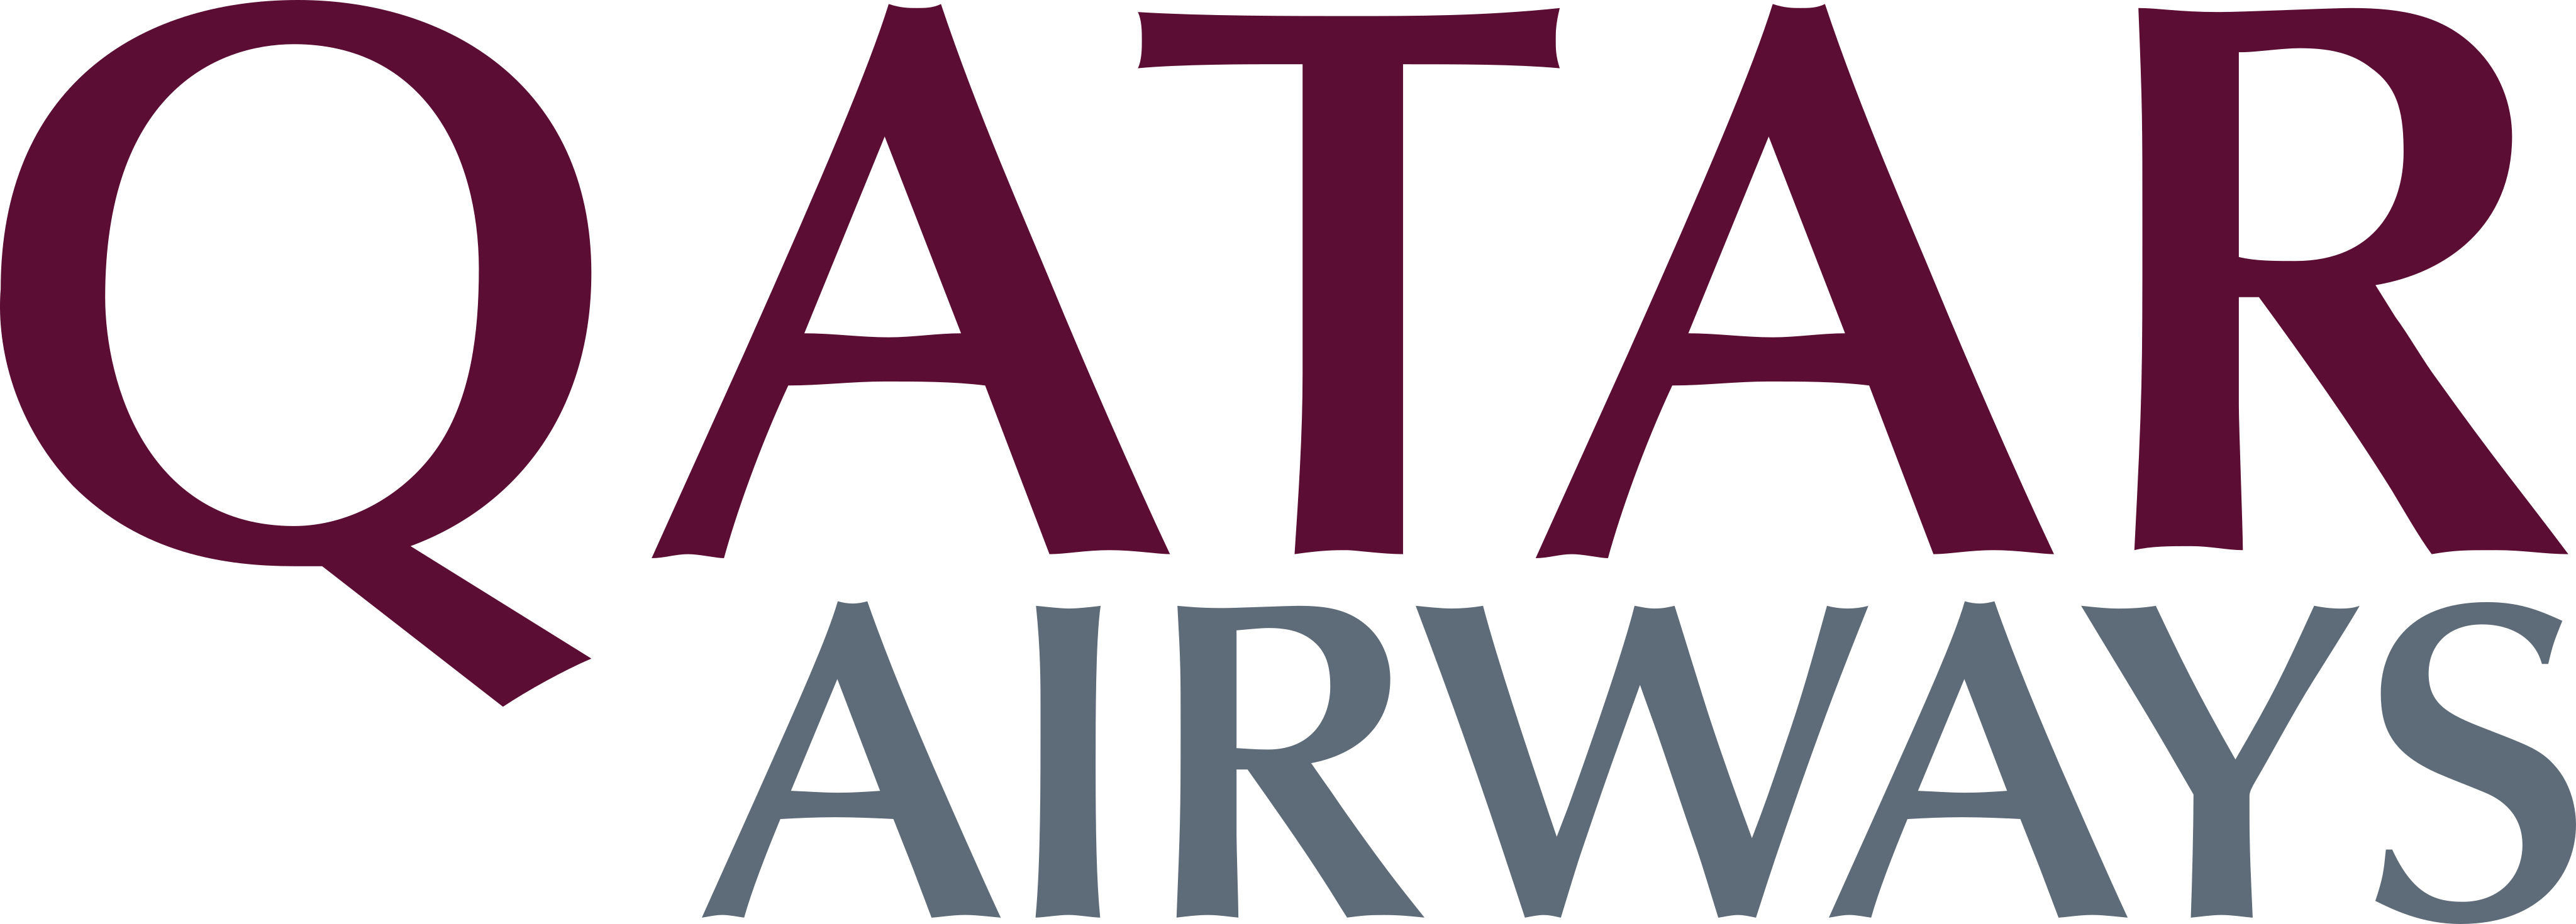 qatar airways logo - Qatar Airways Logo